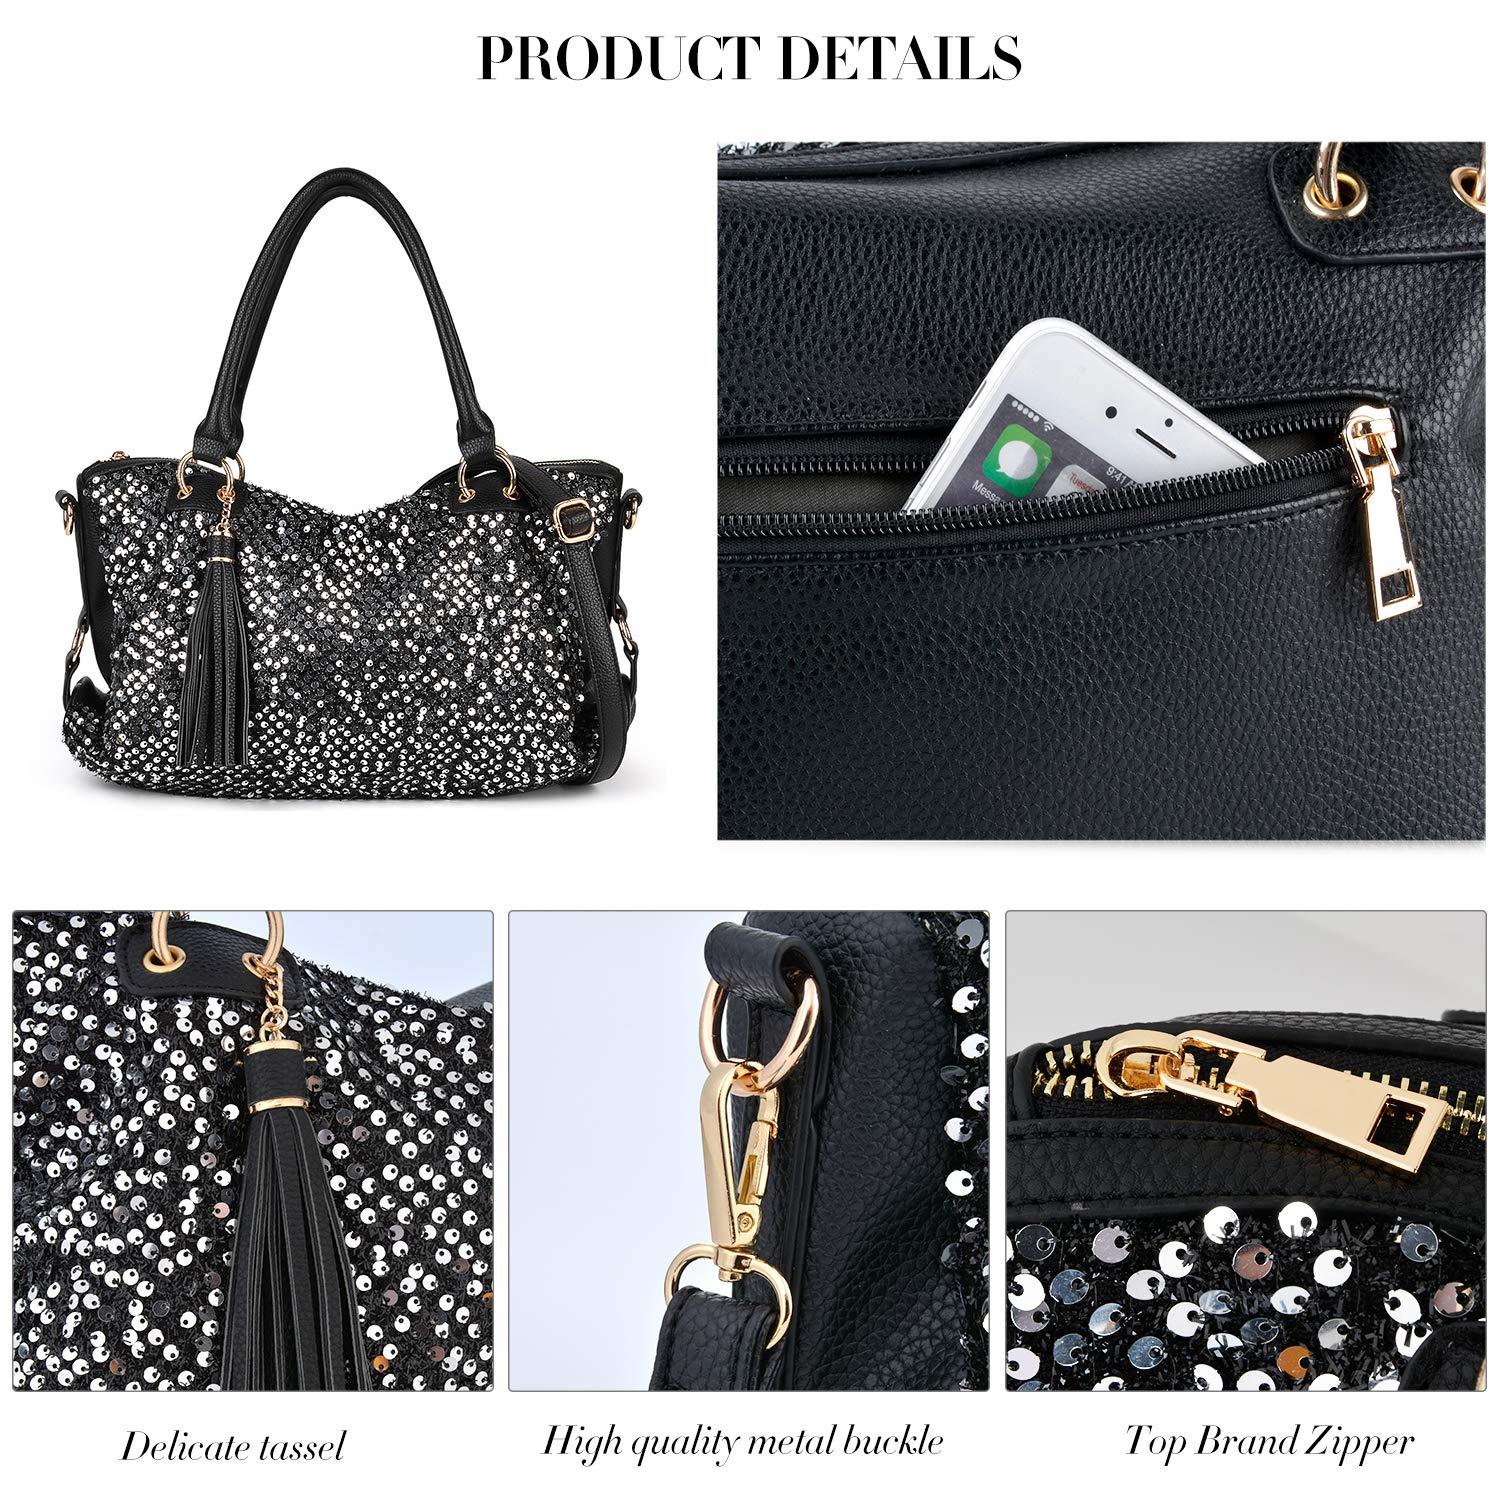 ed25e25eeb Amazon.com  COOFIT Black Purse Handbag Hobo Style Sequin PU Leather  Shoulder Bag for Women  Clothing